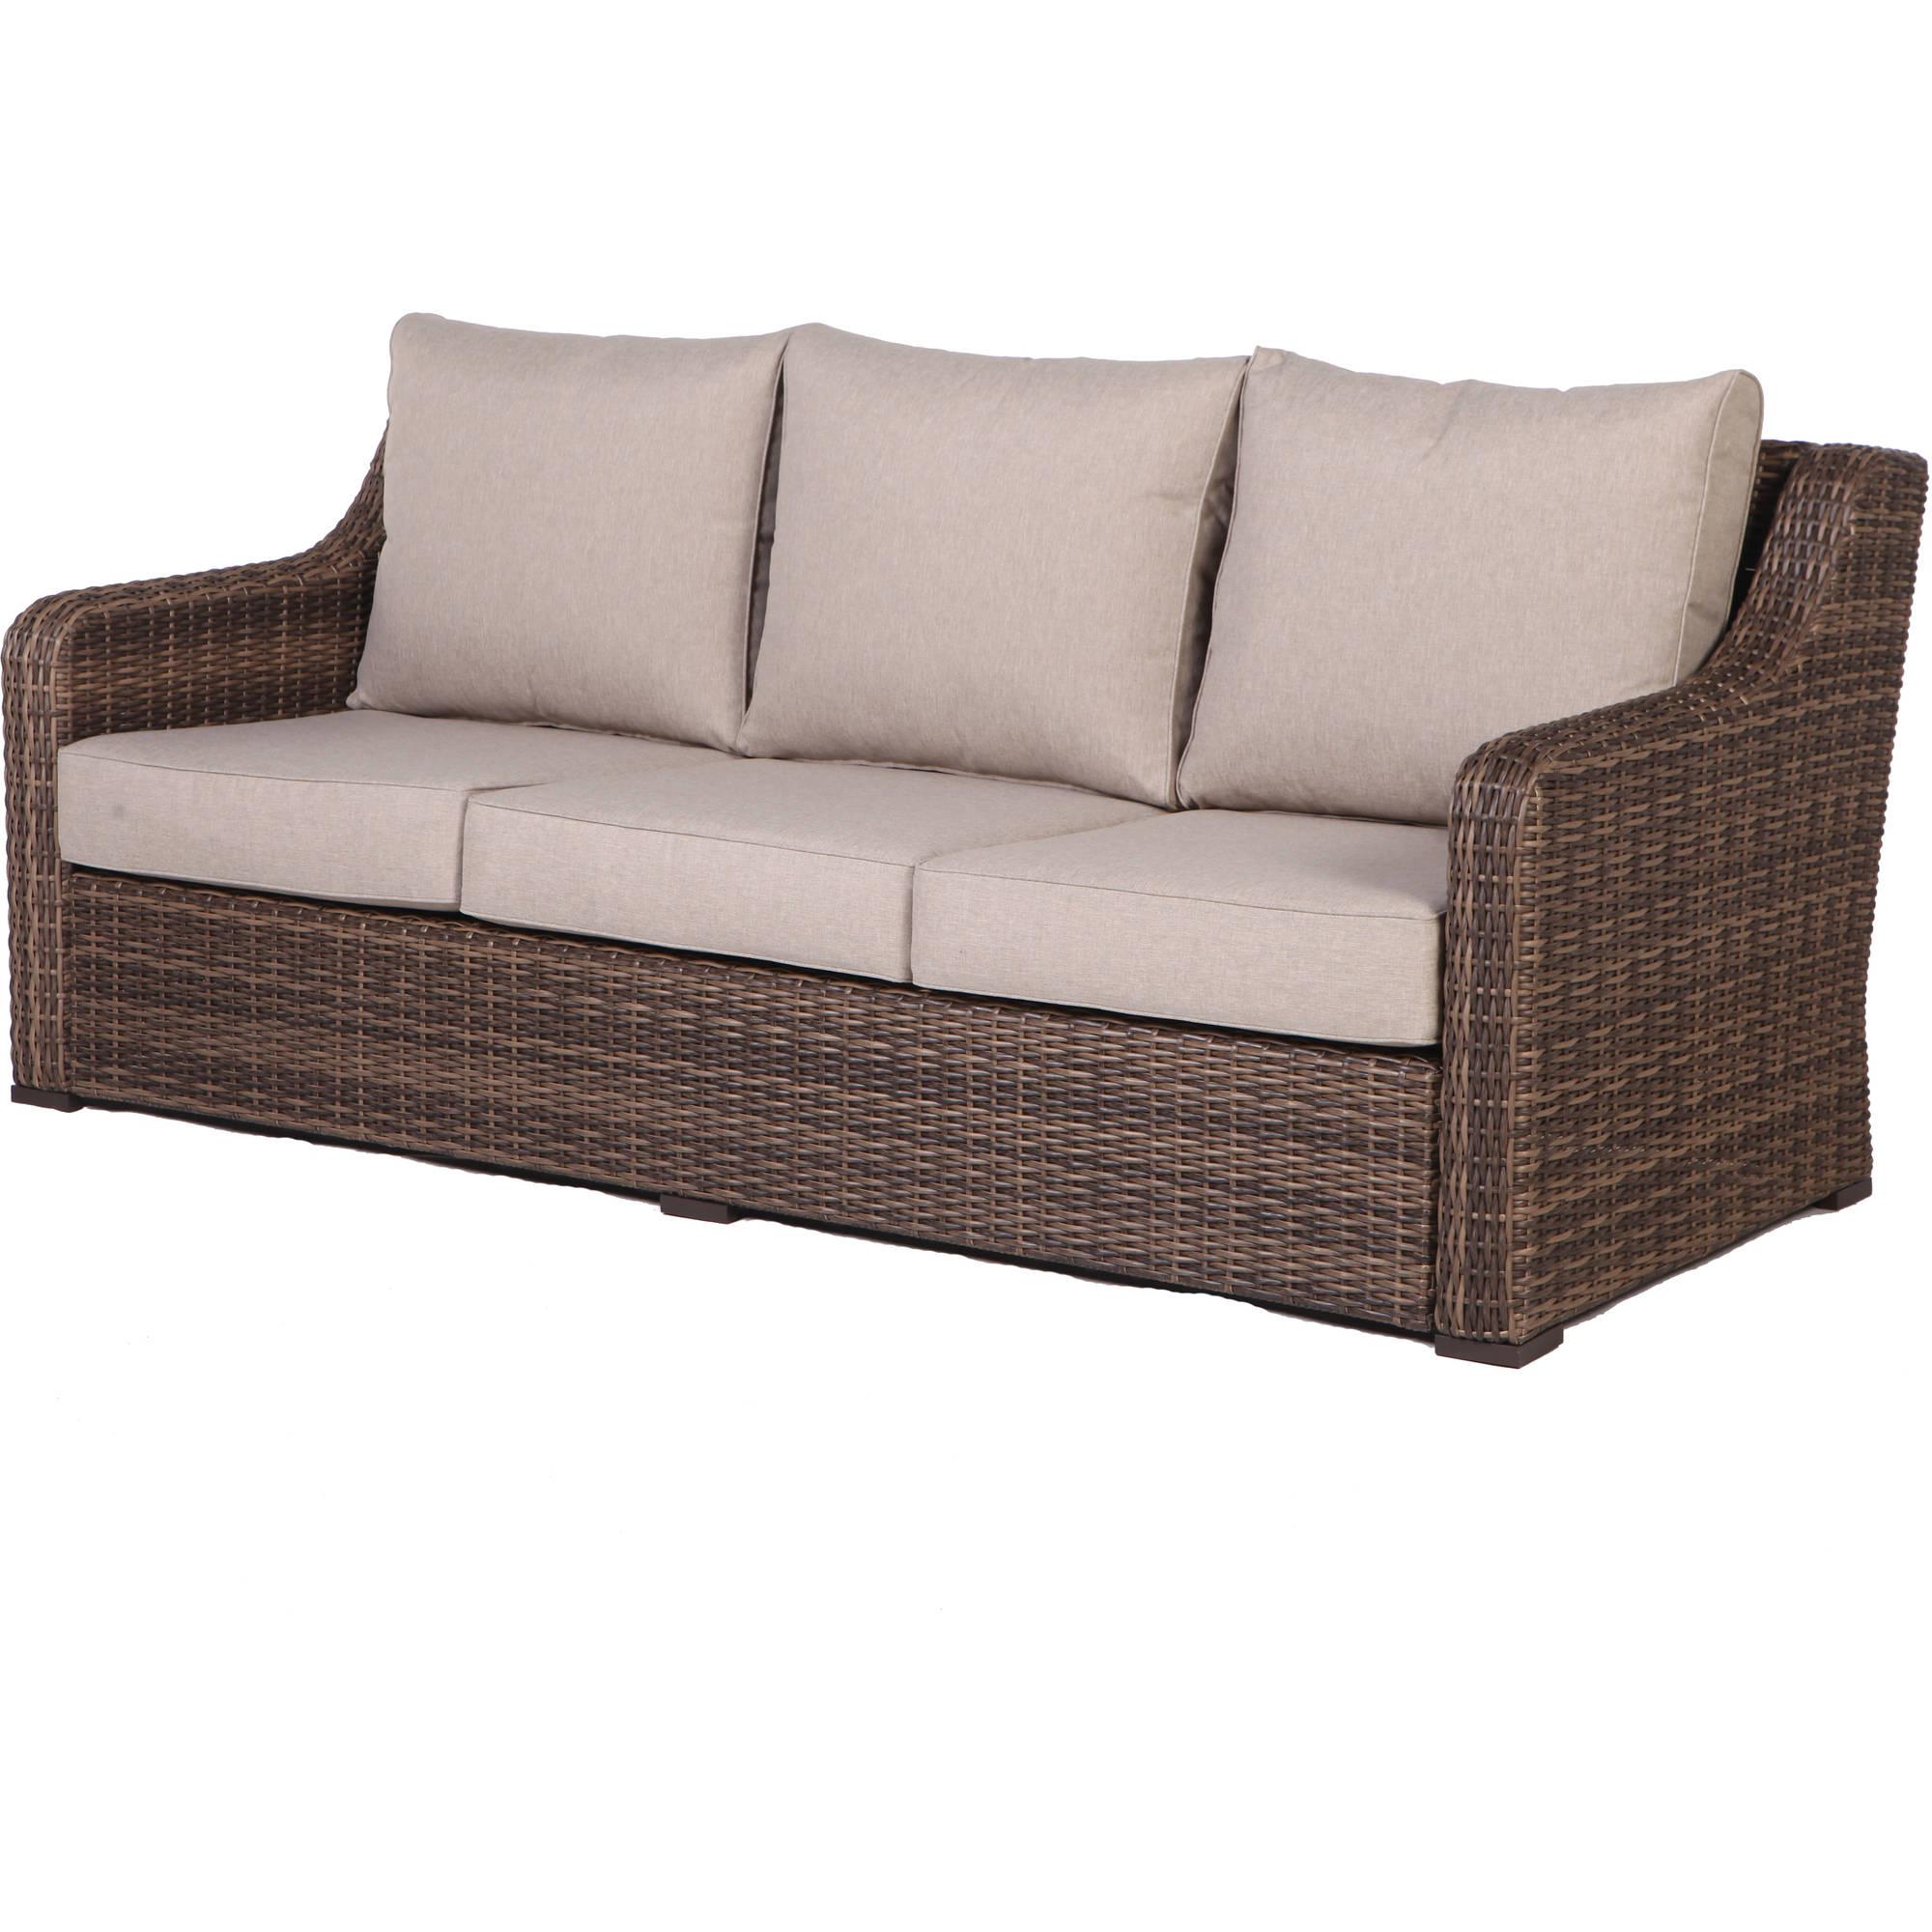 Better Homes & Gardens Hawthorne Park Sofa and Coffee Table